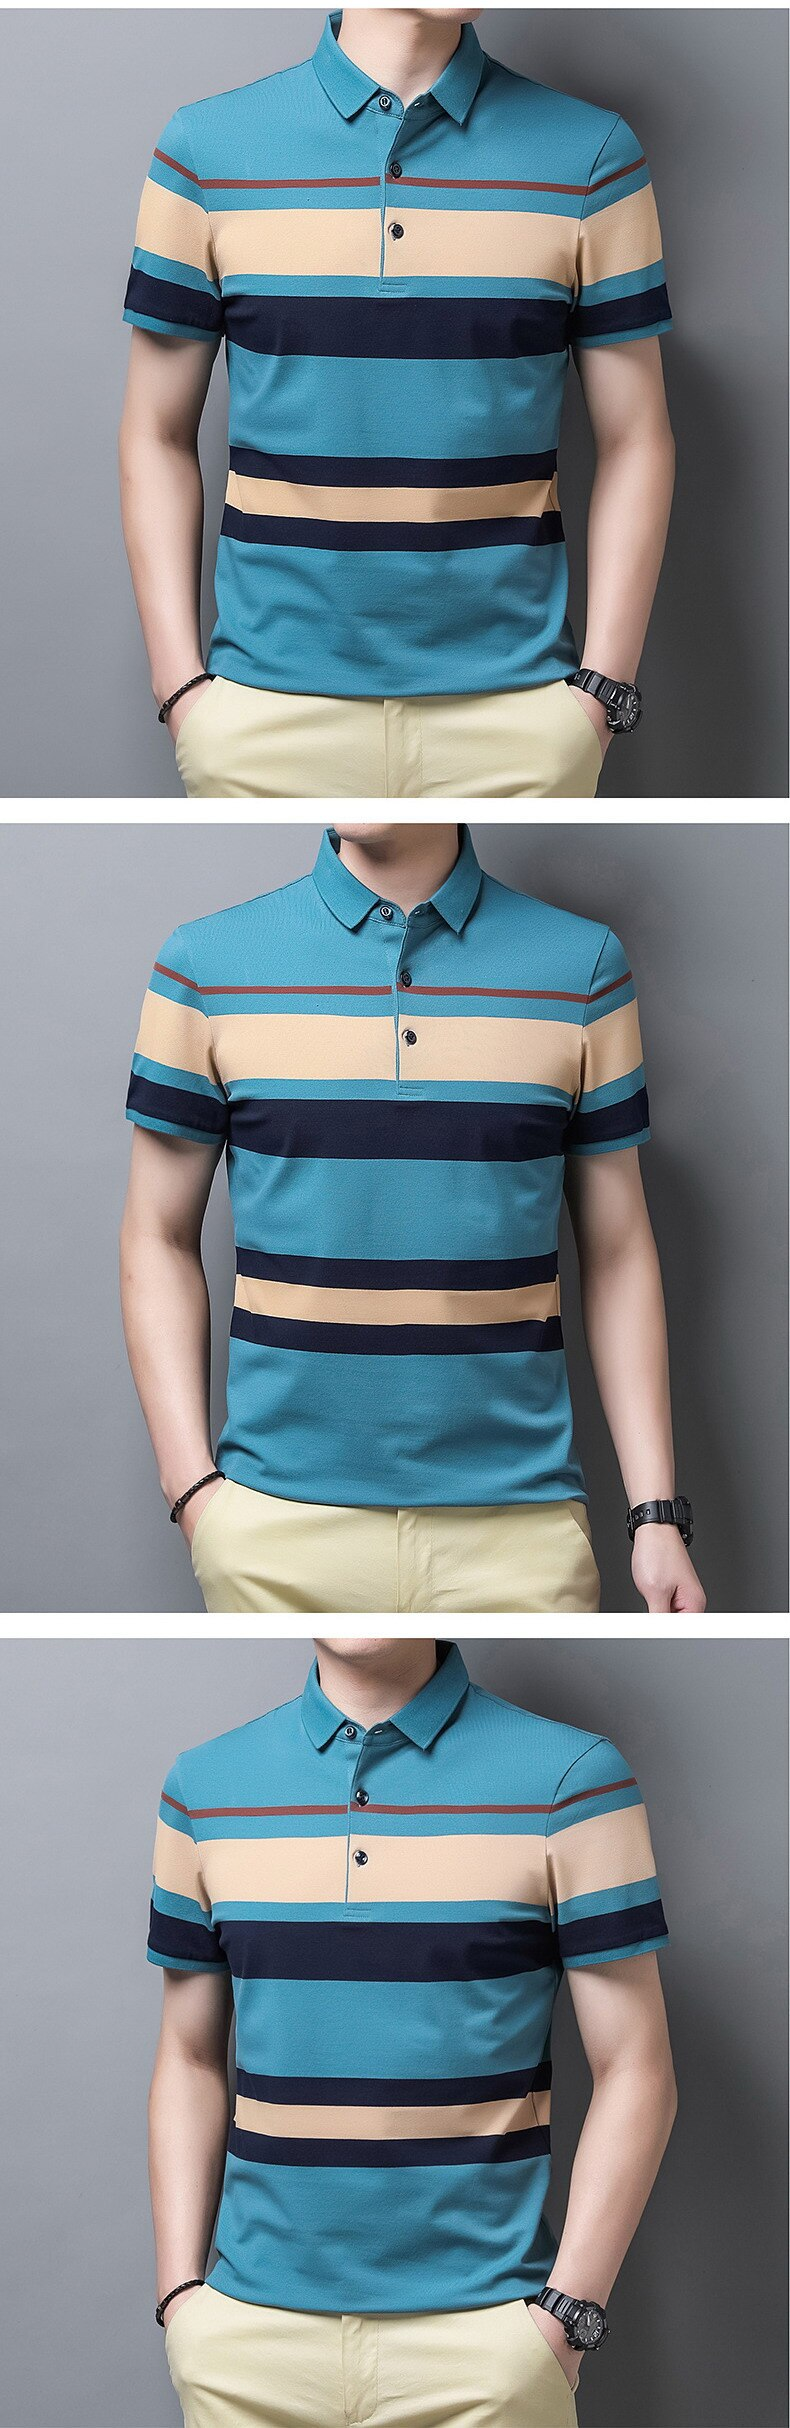 Summer 2021 New Combed Cotton Men's POLO Shirt Short Sleeve Lapel  T-shirt Thin Section Youth Striped Shirt Fashion Casual Tops